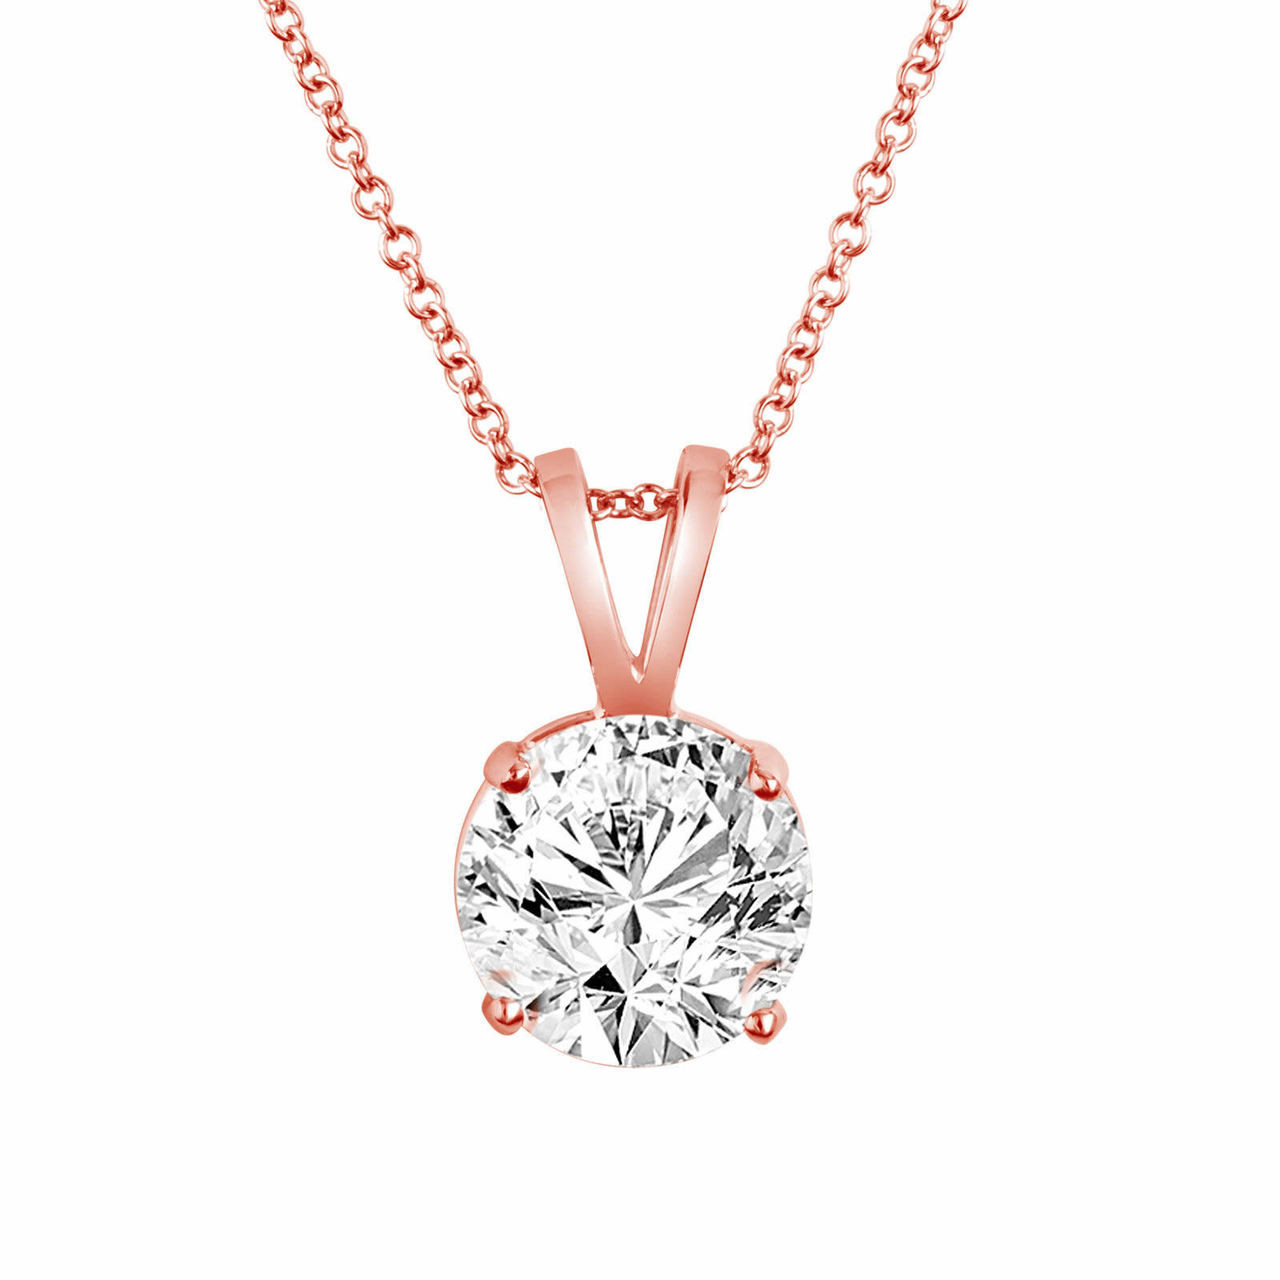 14k Rose Gold Solitaire Diamond Pendant Necklace 050. Onyx Beads. 4 Carat Diamond Eternity Band. Citrine Wedding Rings. Carnival Beads. Ohio State Rings. Pink Engagement Rings. Triple Rings. White Gold Platinum